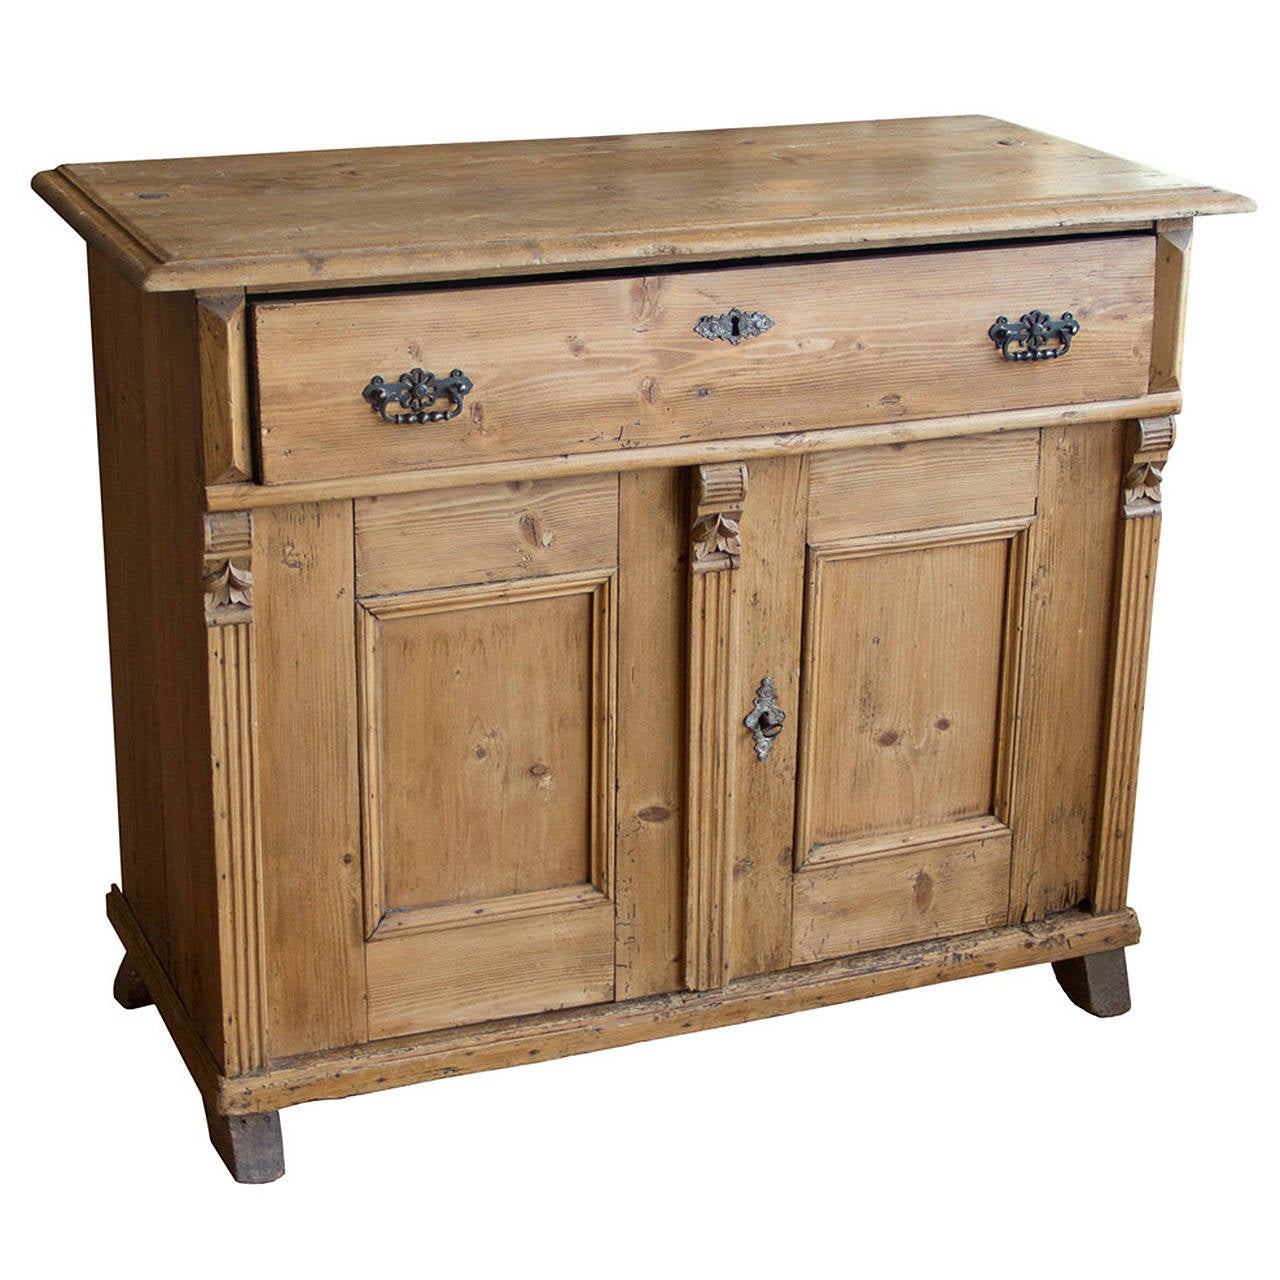 Antique English Pine Cupboard For Sale - Antique English Pine Cupboard At 1stdibs